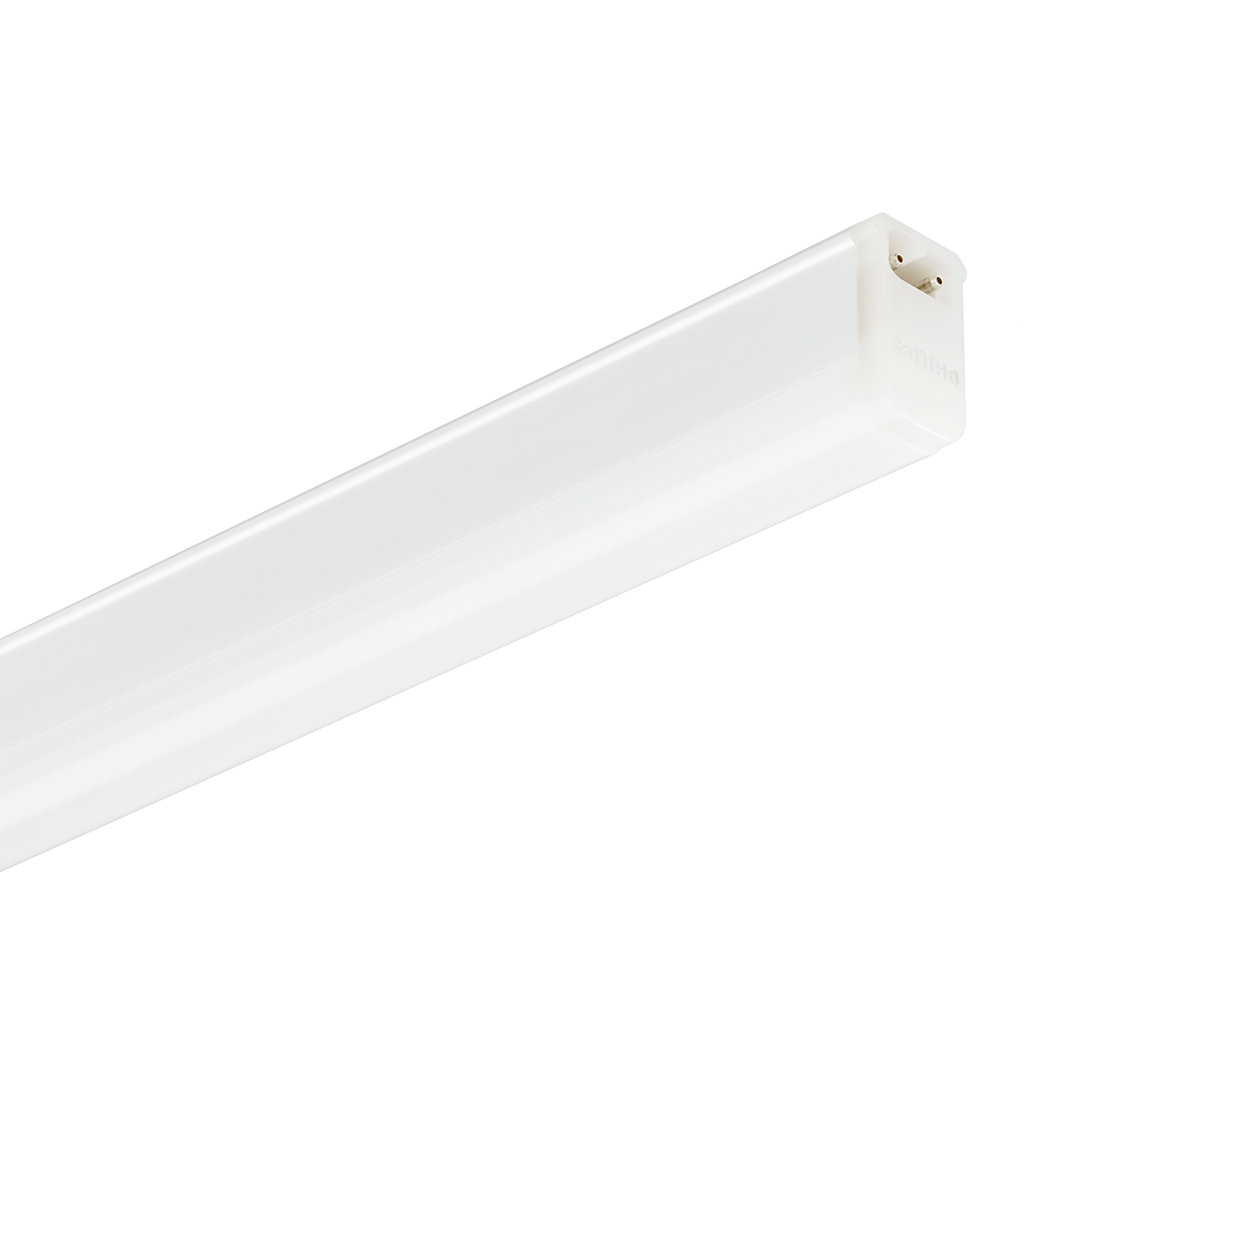 Pentura Mini LED – Réglette ultra-fine